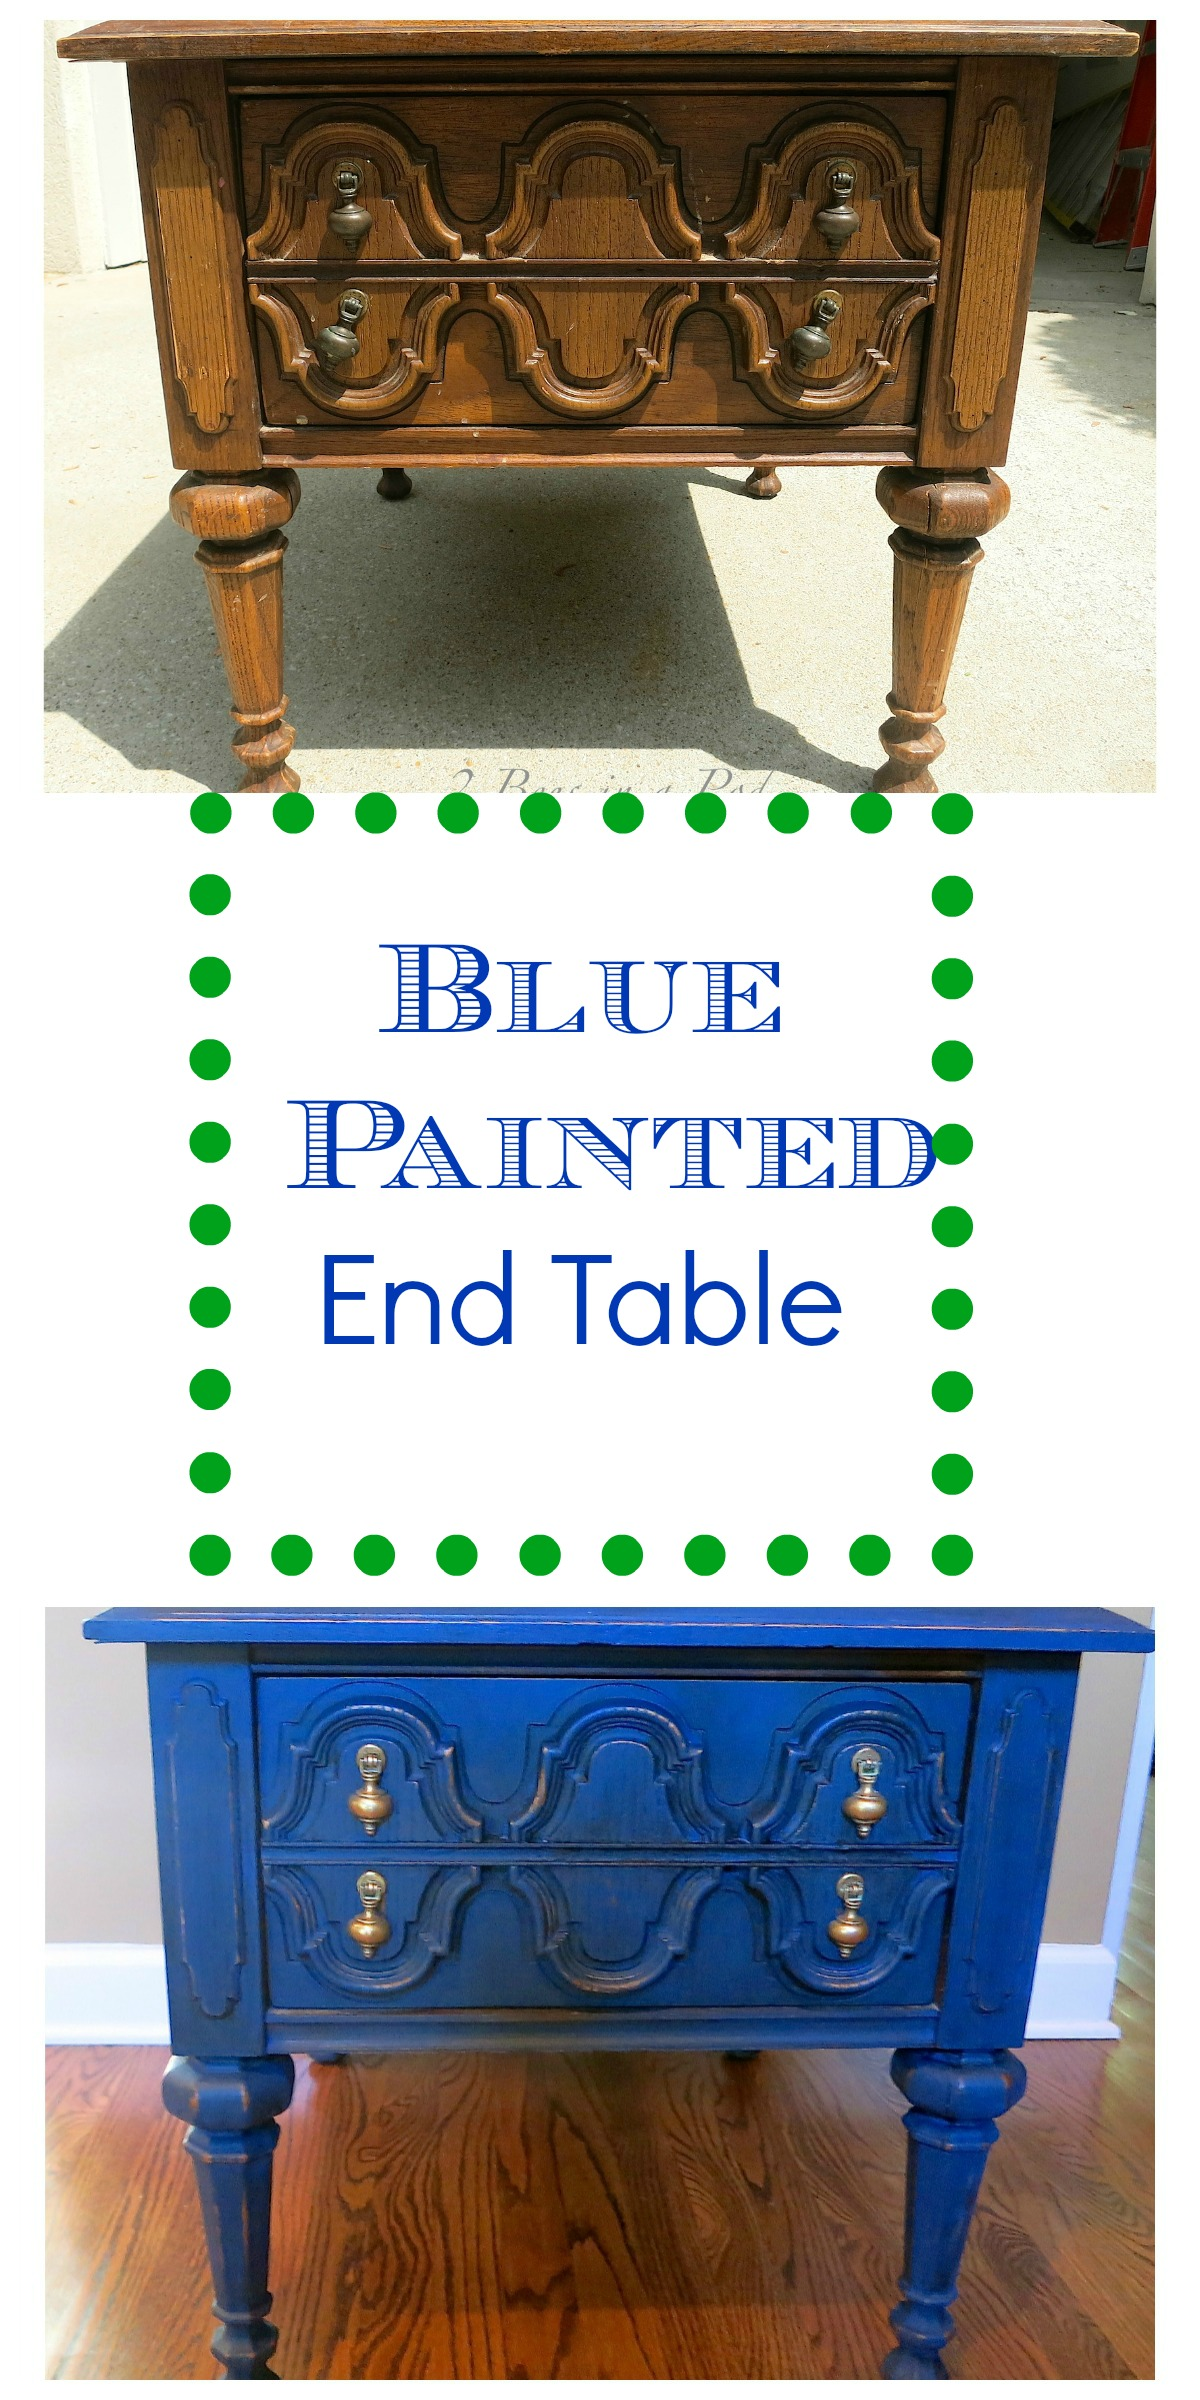 Blue Painted end table with customer color homemade chalk paint